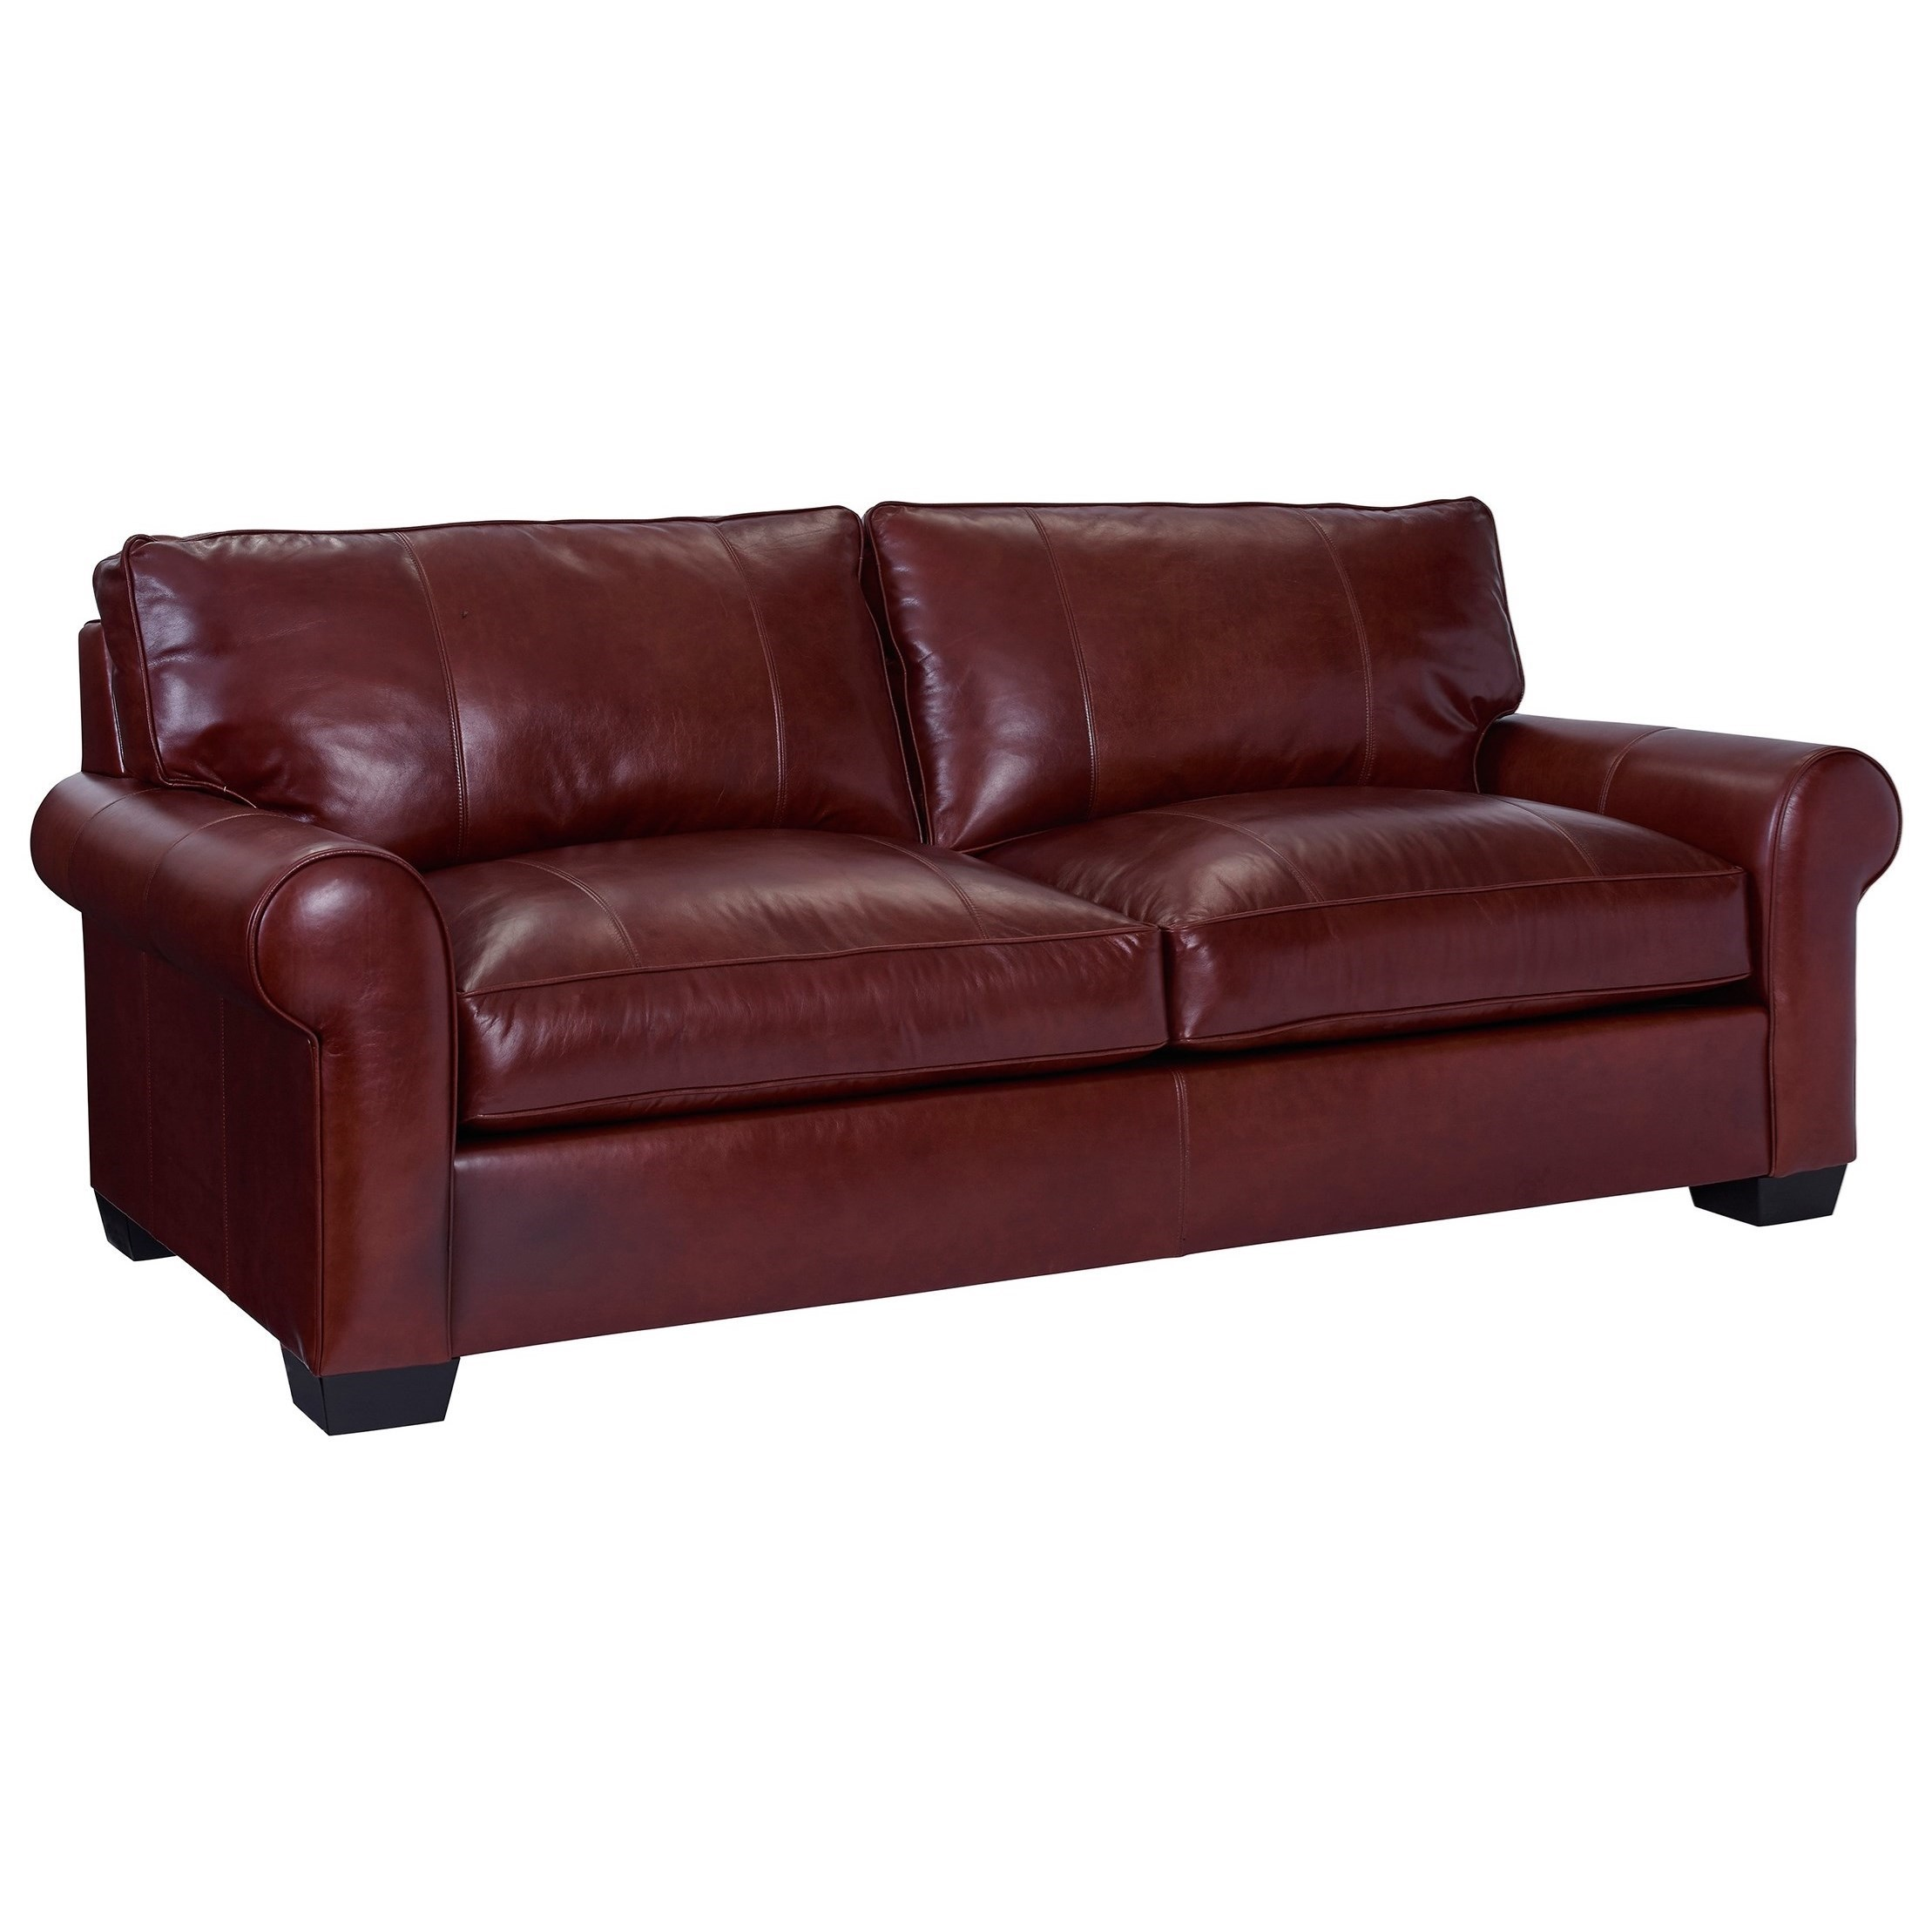 broyhill sleeper sofa wood furniture malaysia leather emily queen